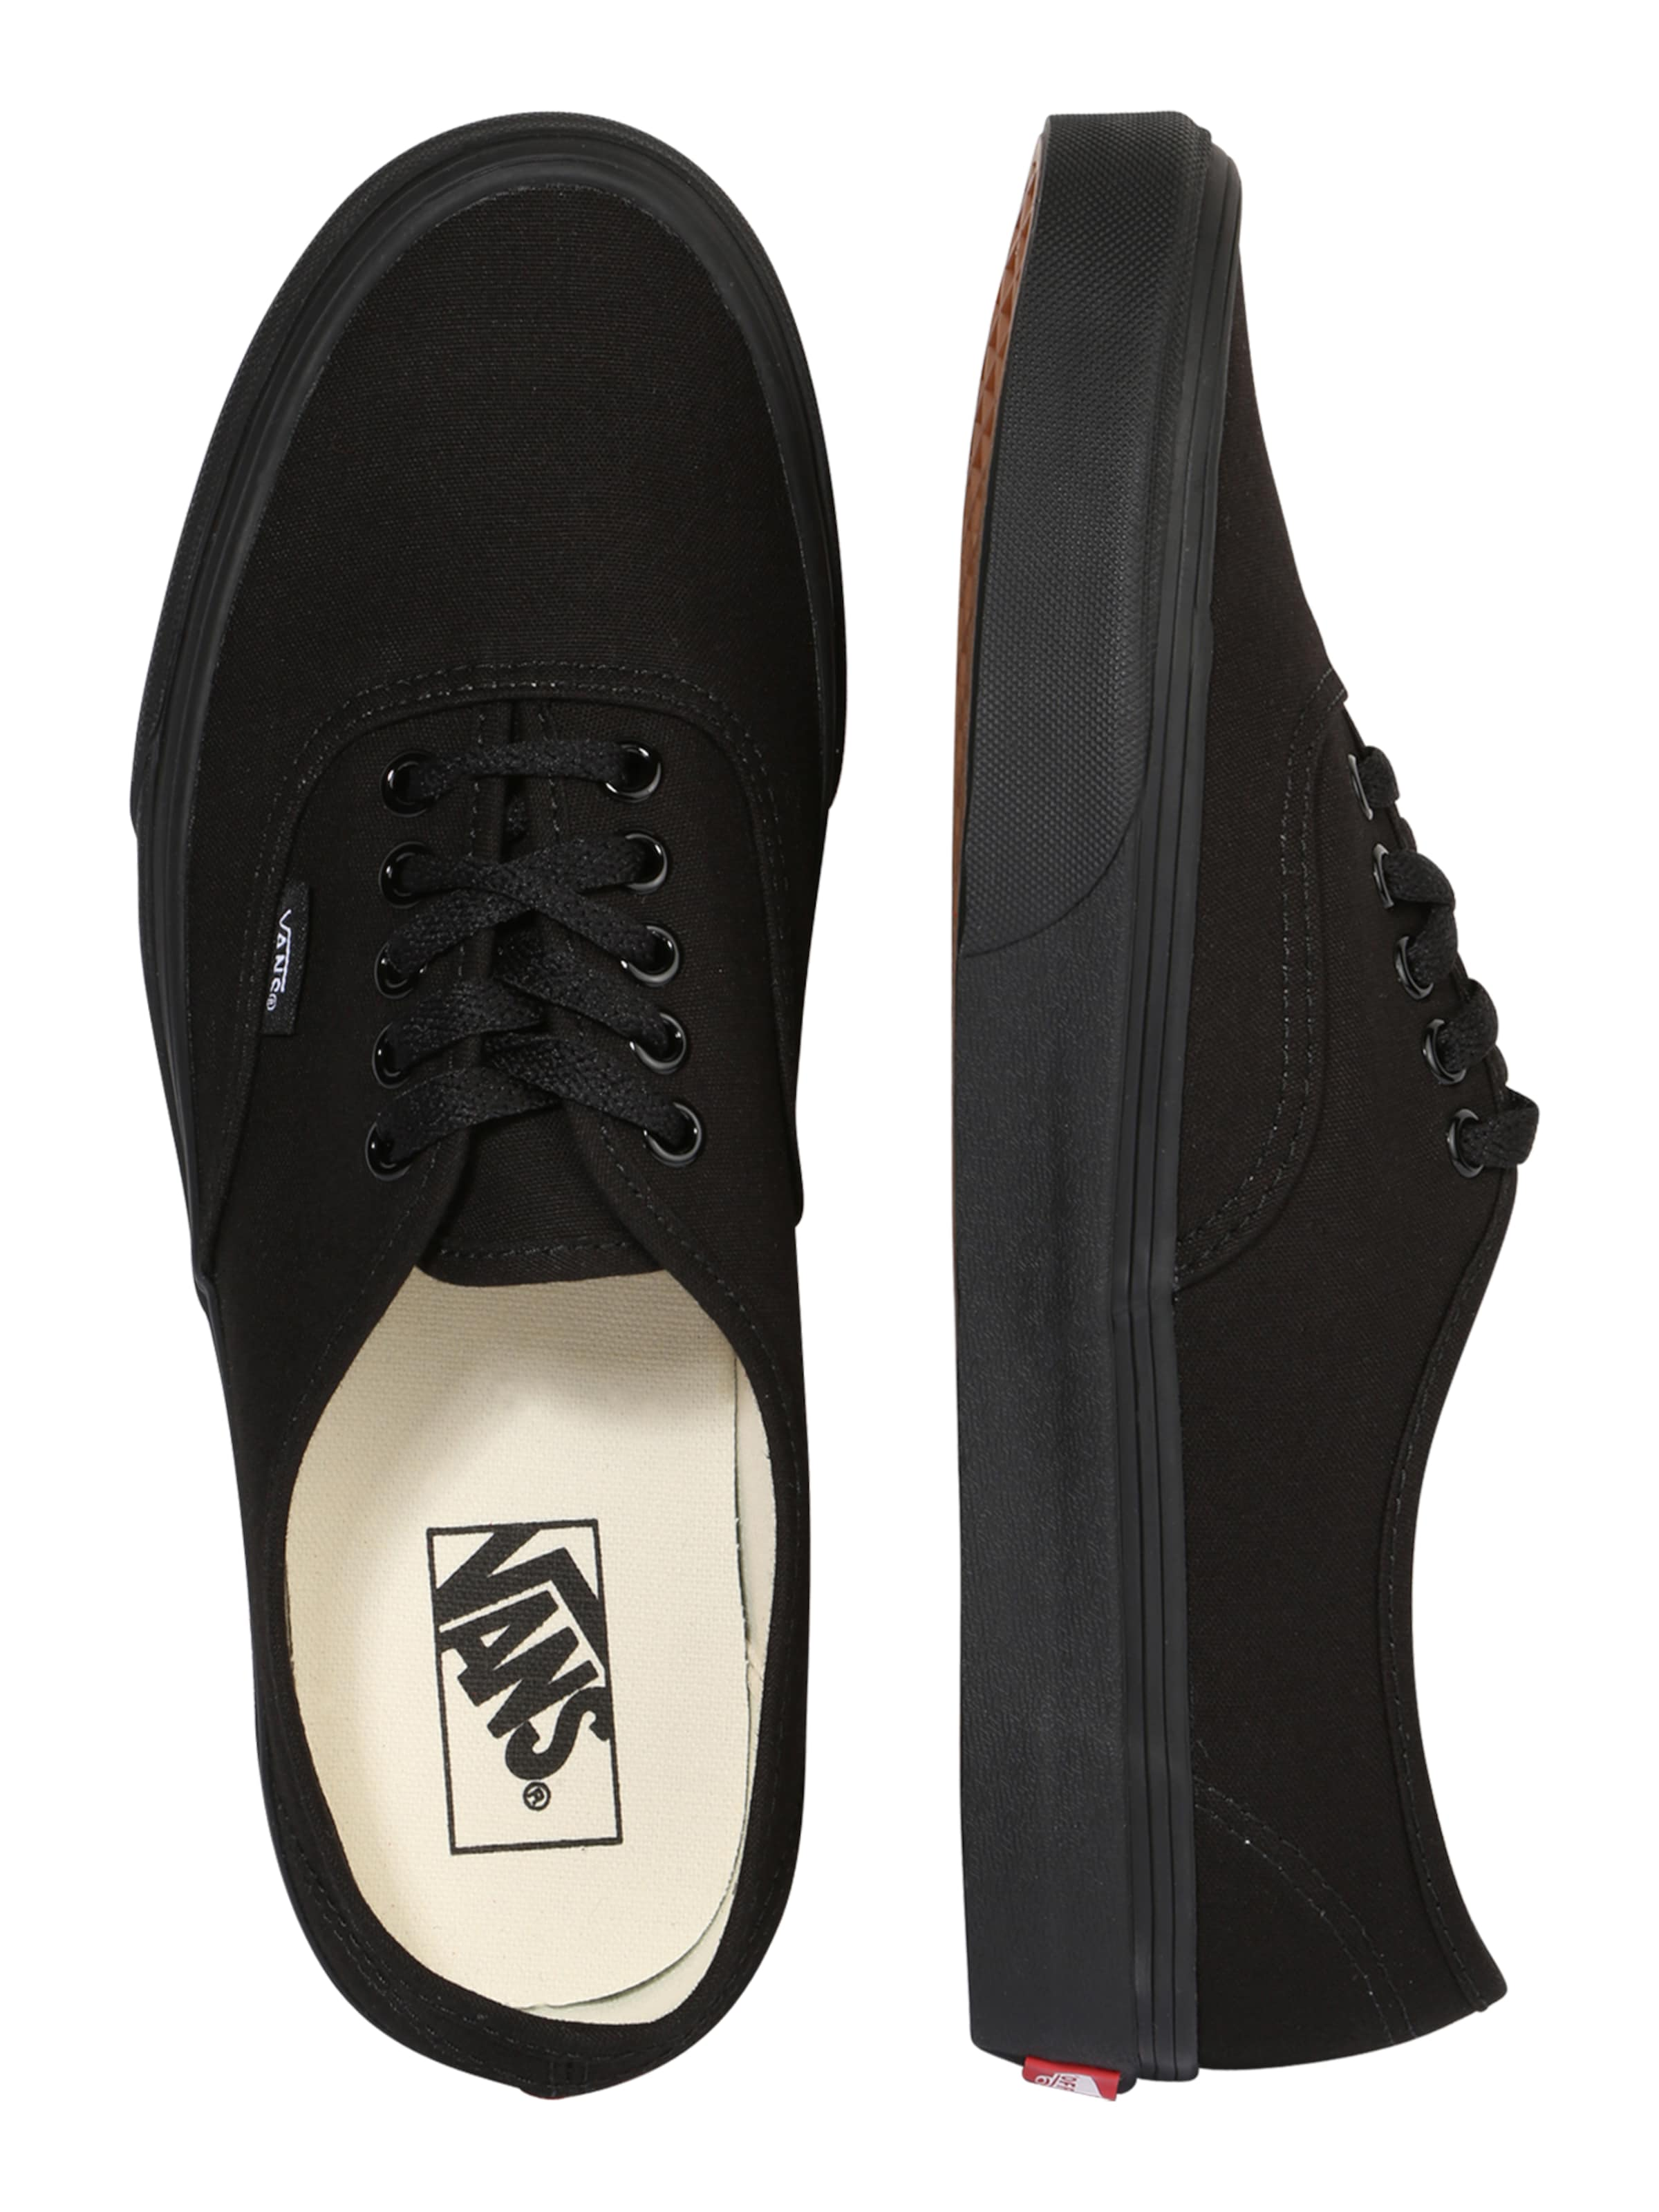 Vans Schwarz In Sneaker 'authentic' Vans CxoedBr